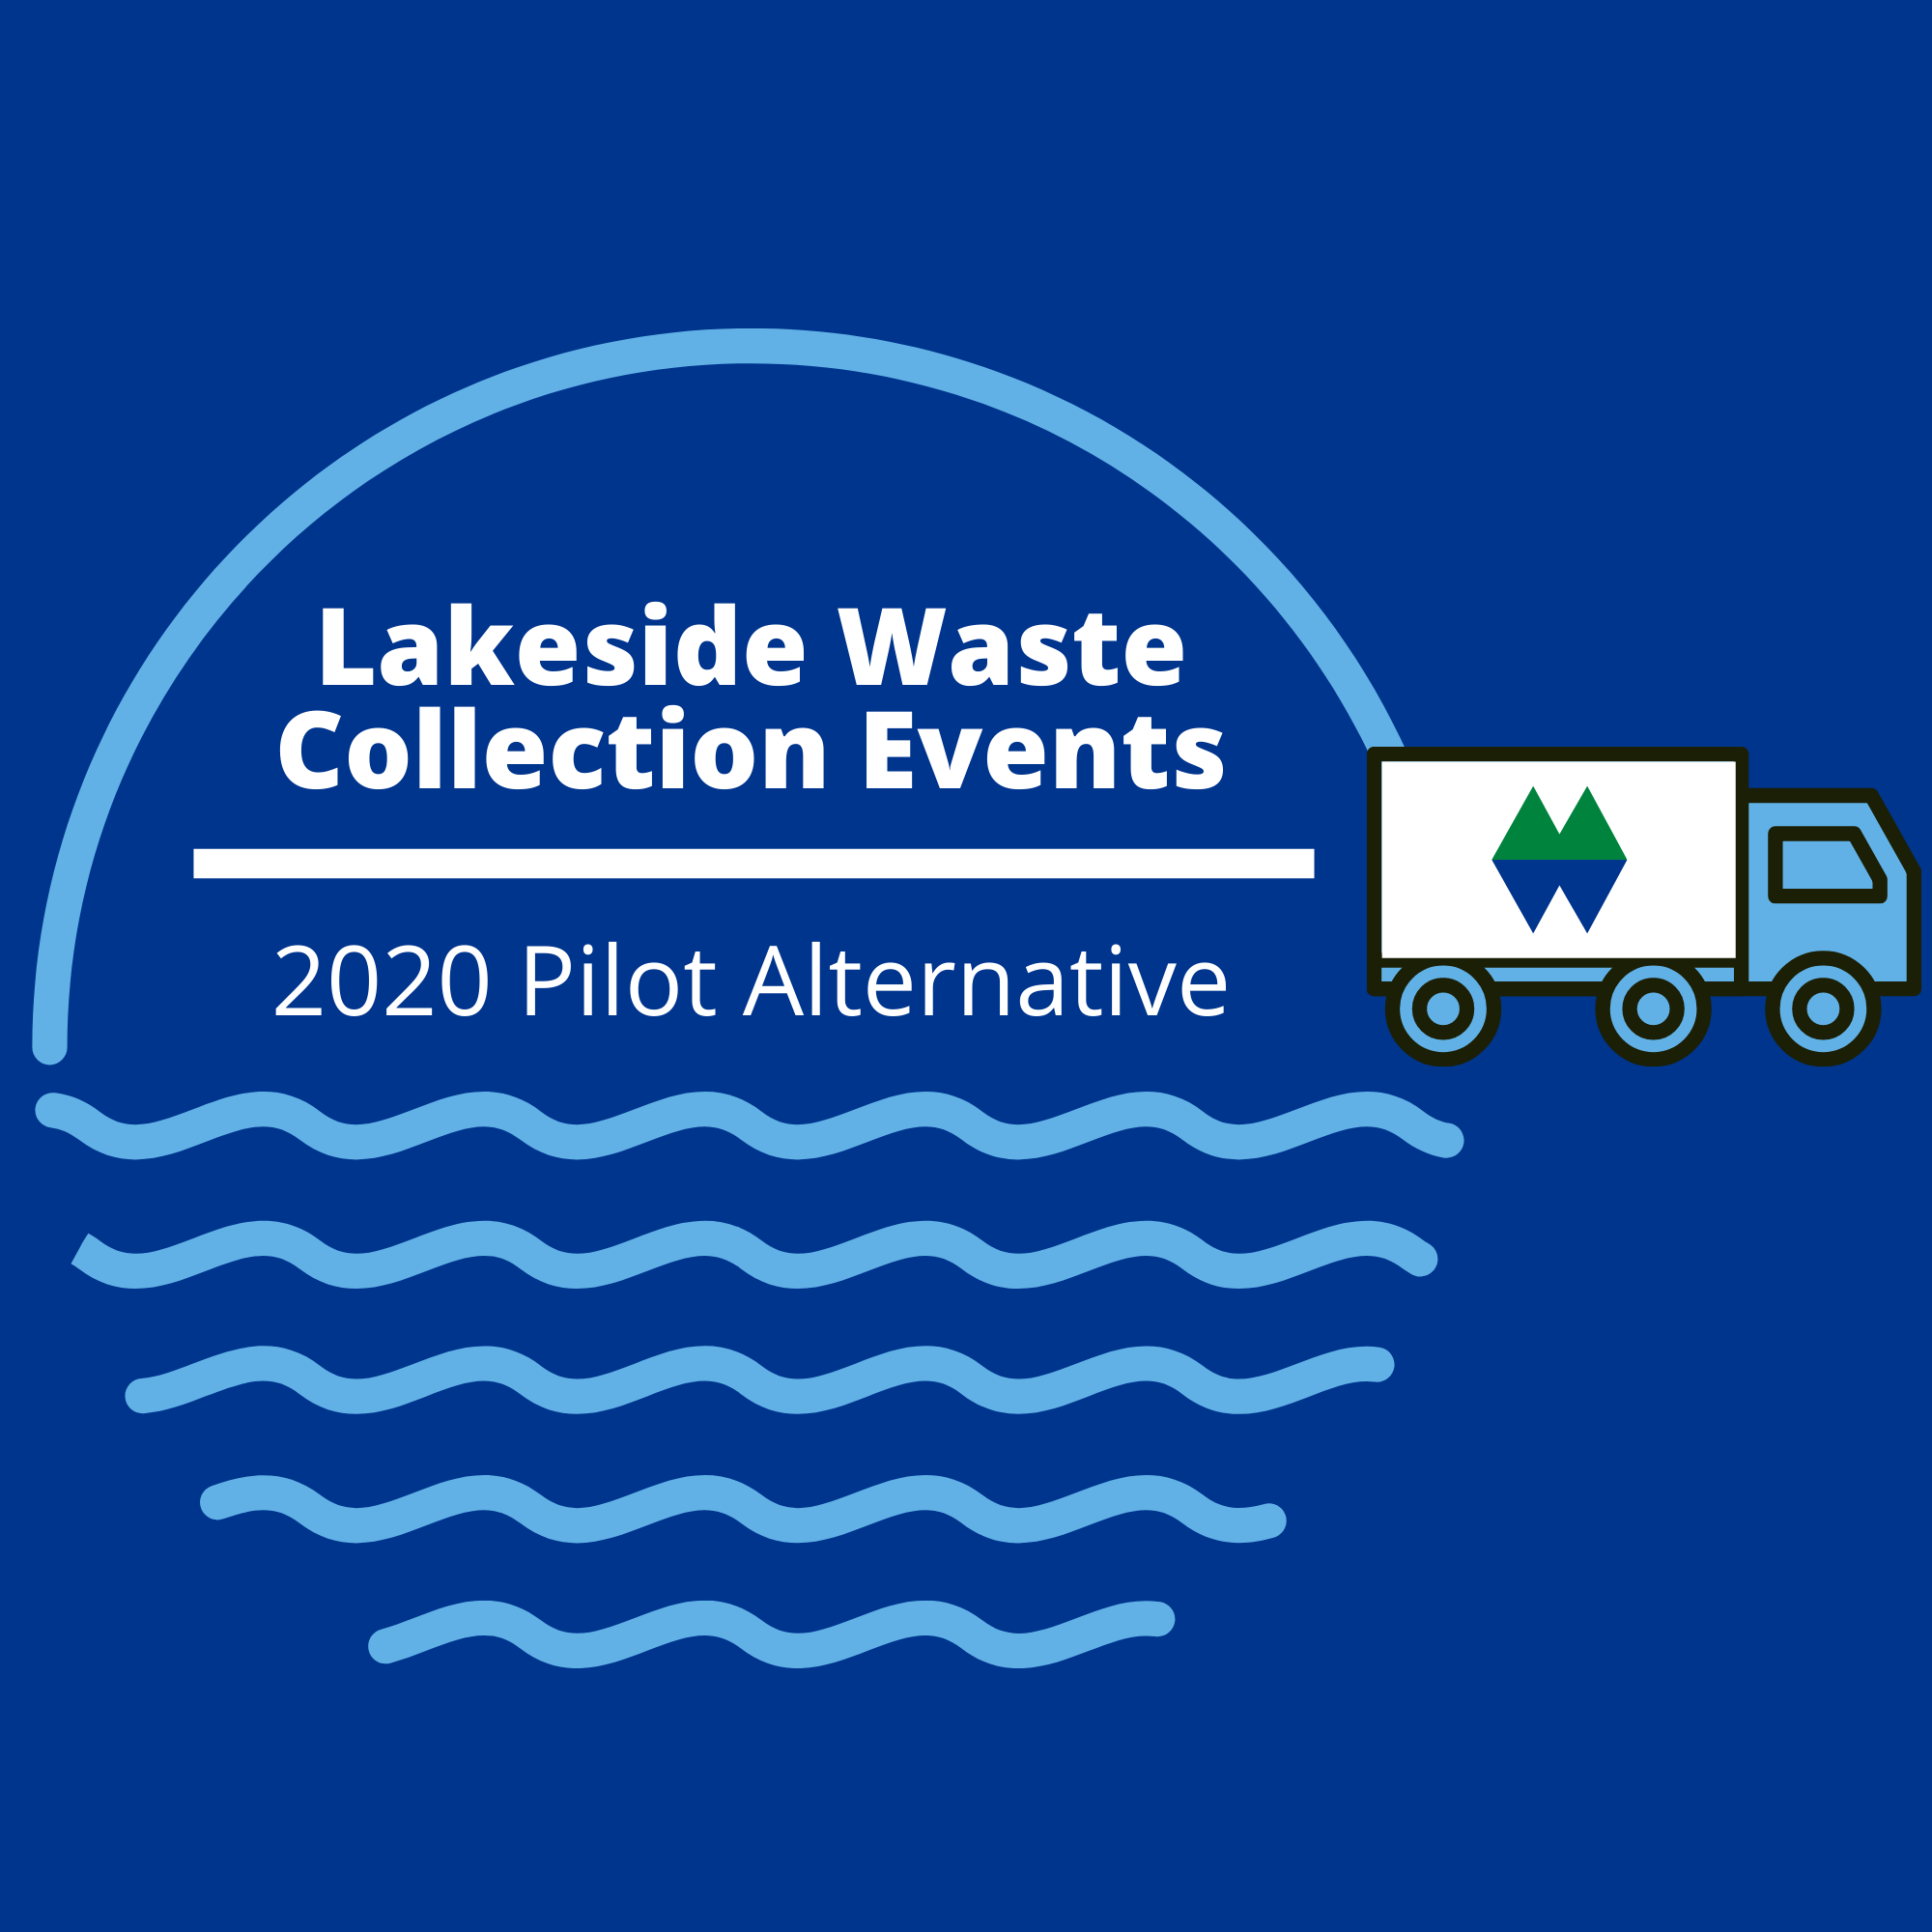 Lakeside Waste Collection Events Logo